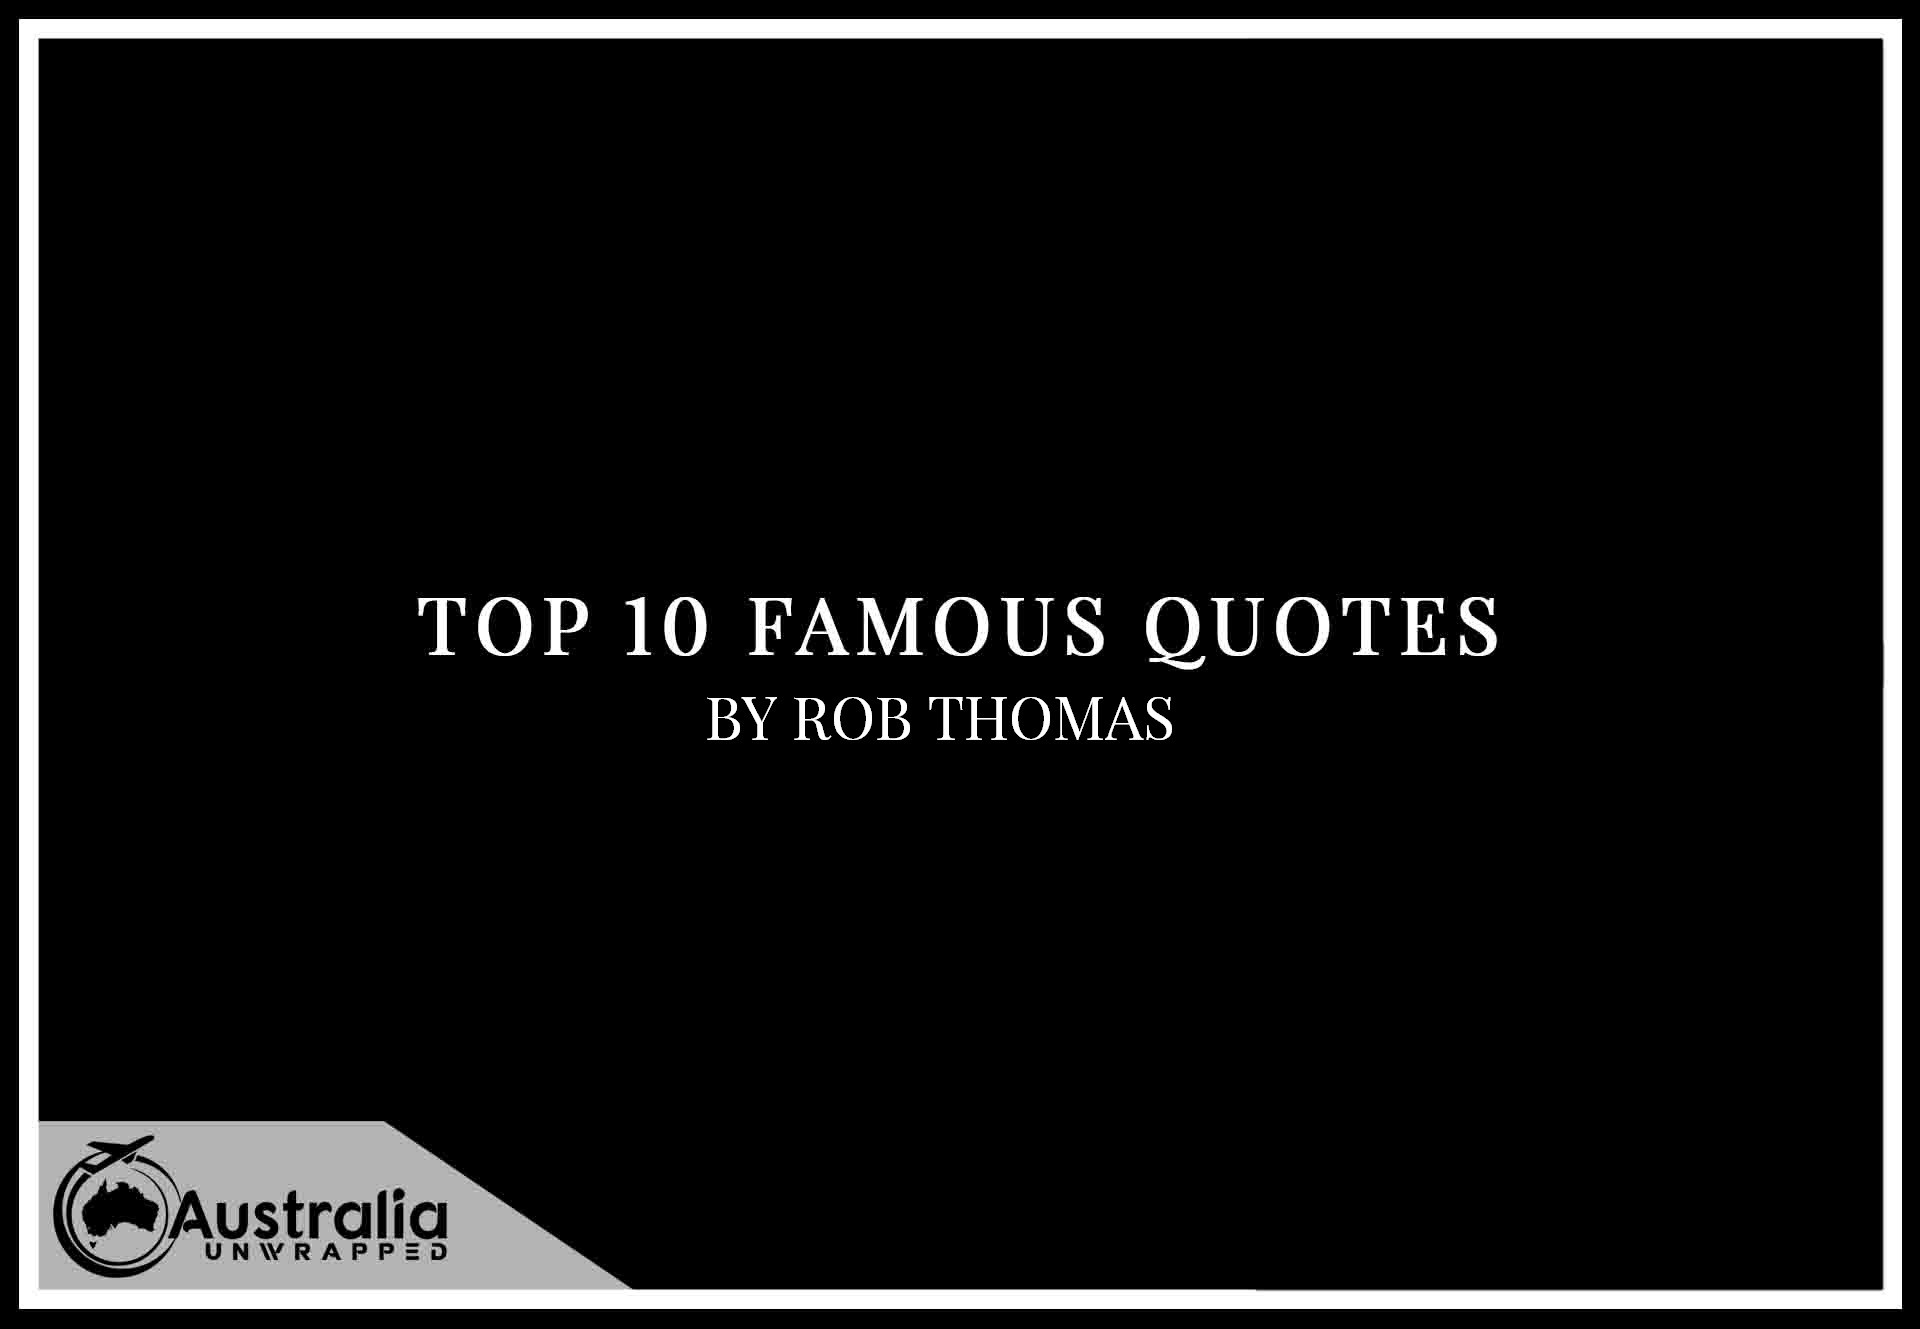 Top 10 Famous Quotes by Author Rob Thurman